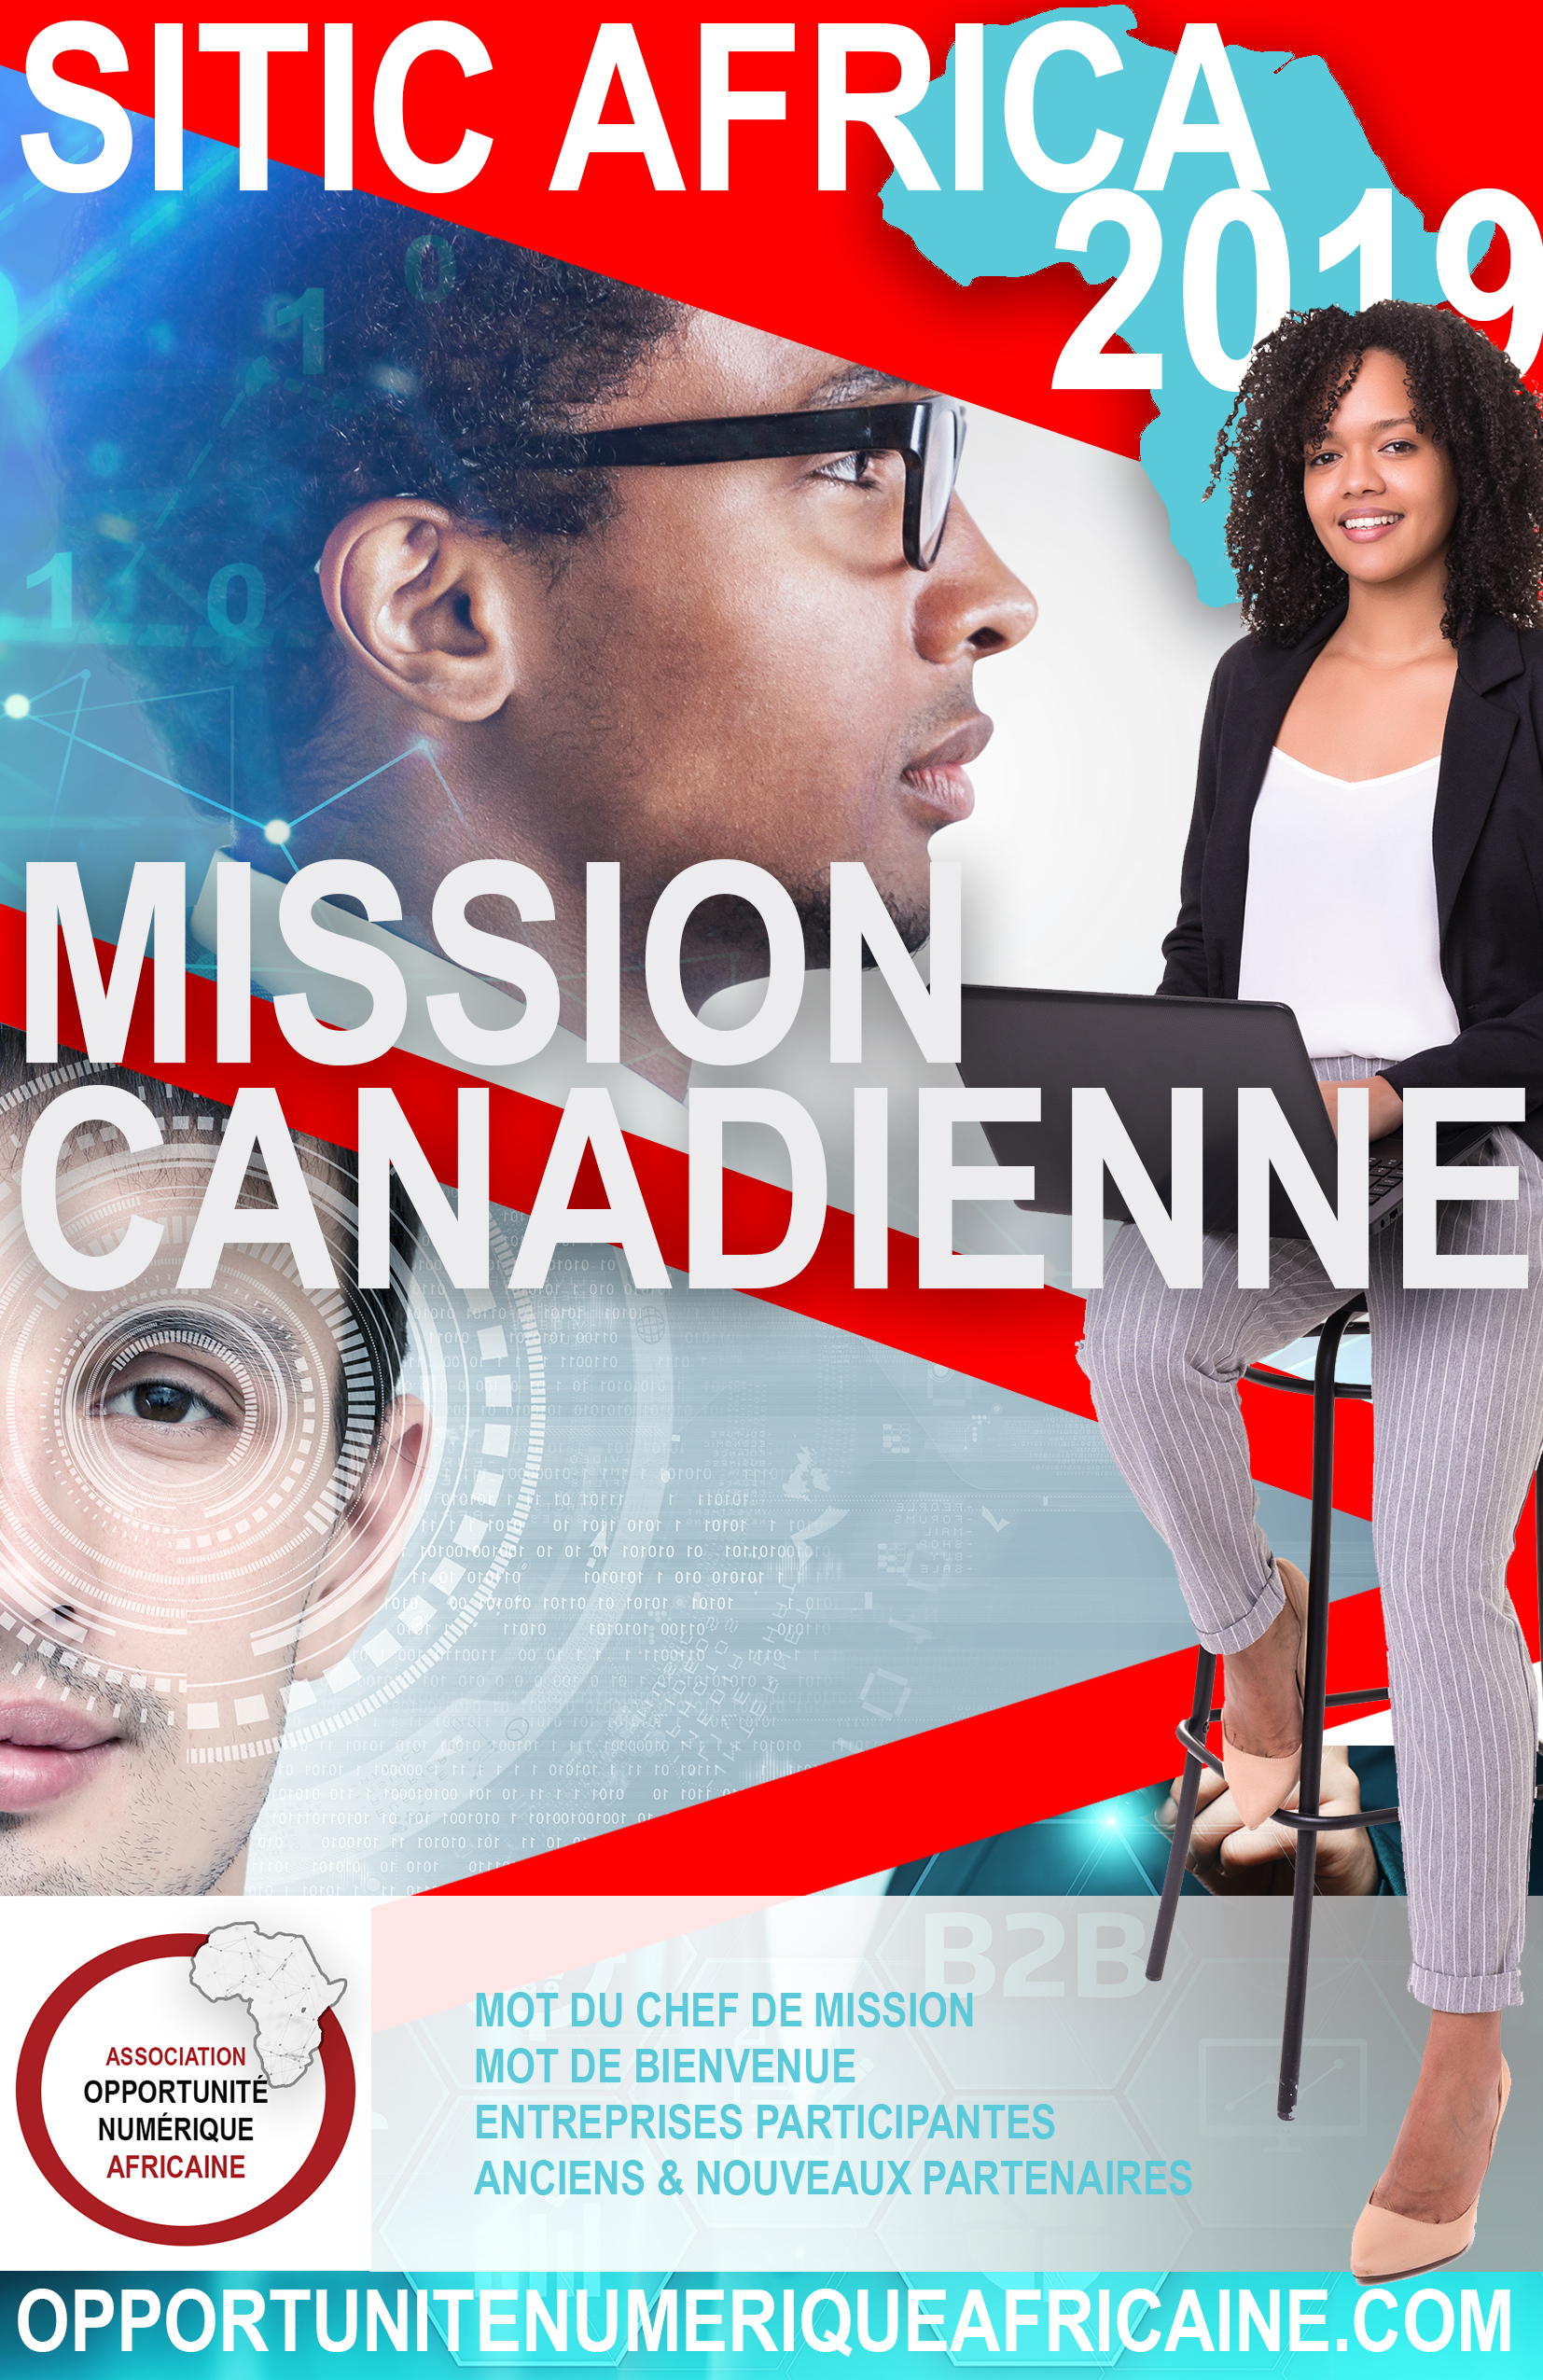 half-letter - cover - mission canadienne sitic africa 2019.jpg